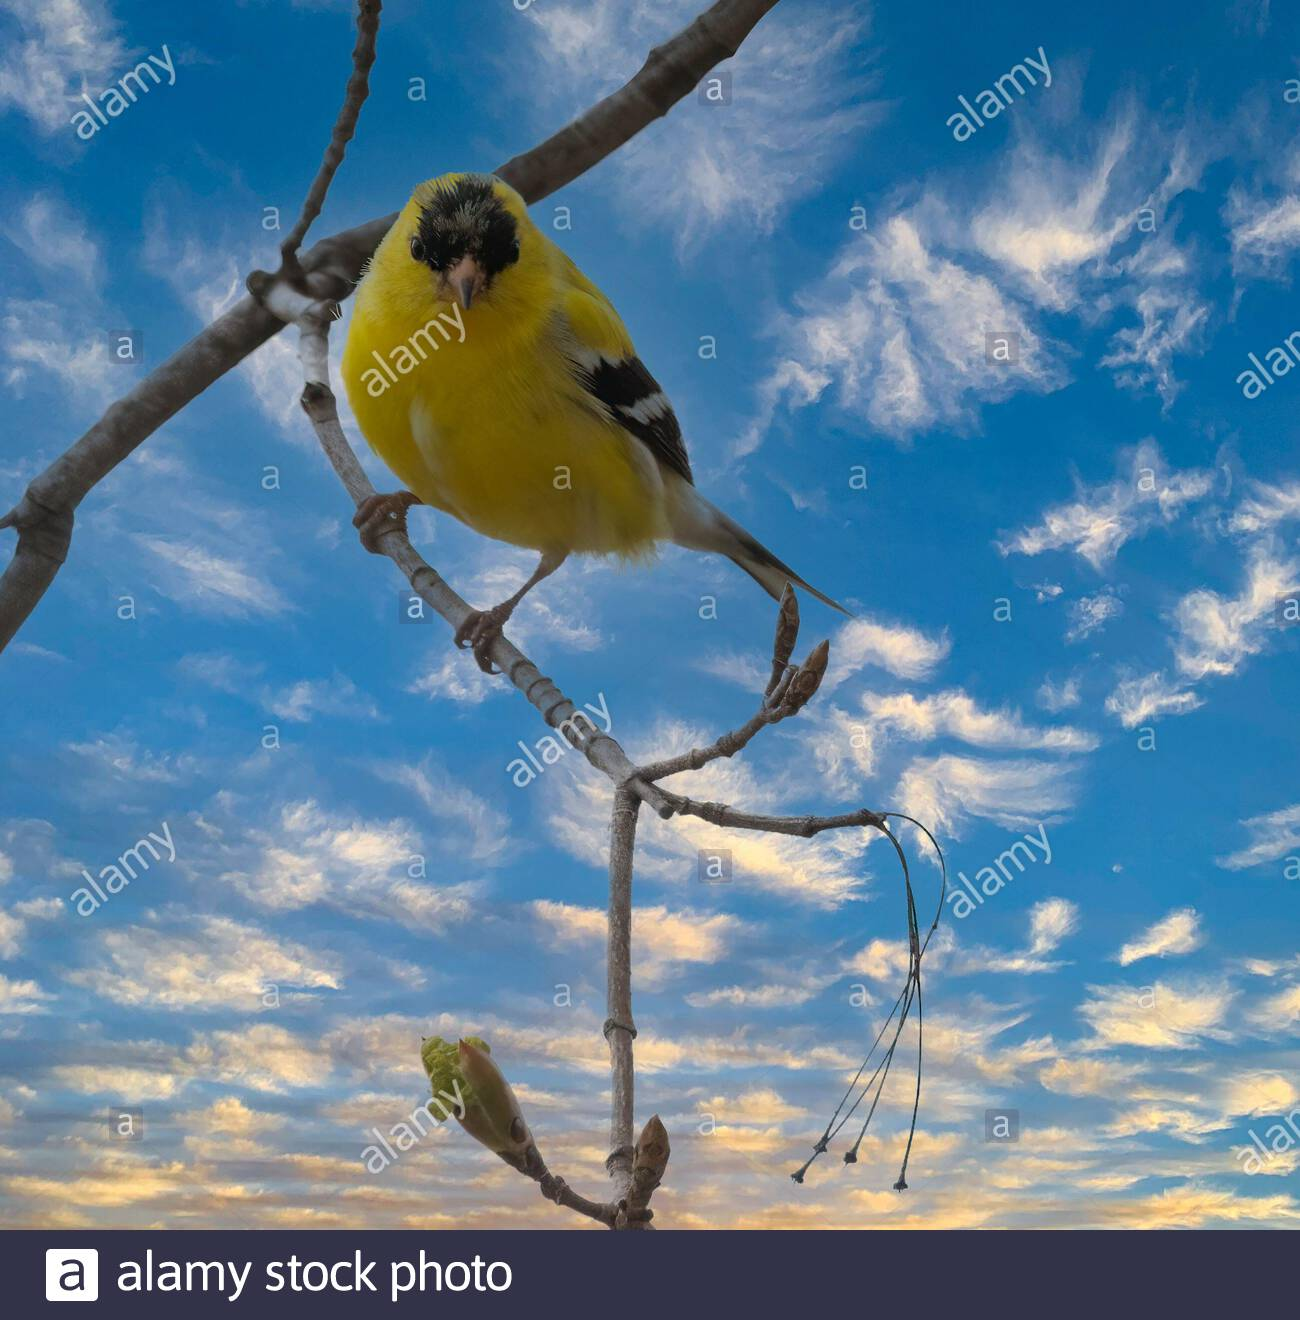 american-goldfinch-spinus-tristis-perched-on-branch-with-bright-sky-with-clouds-in-background-looking-at-camera-2F9N1R9.jpg